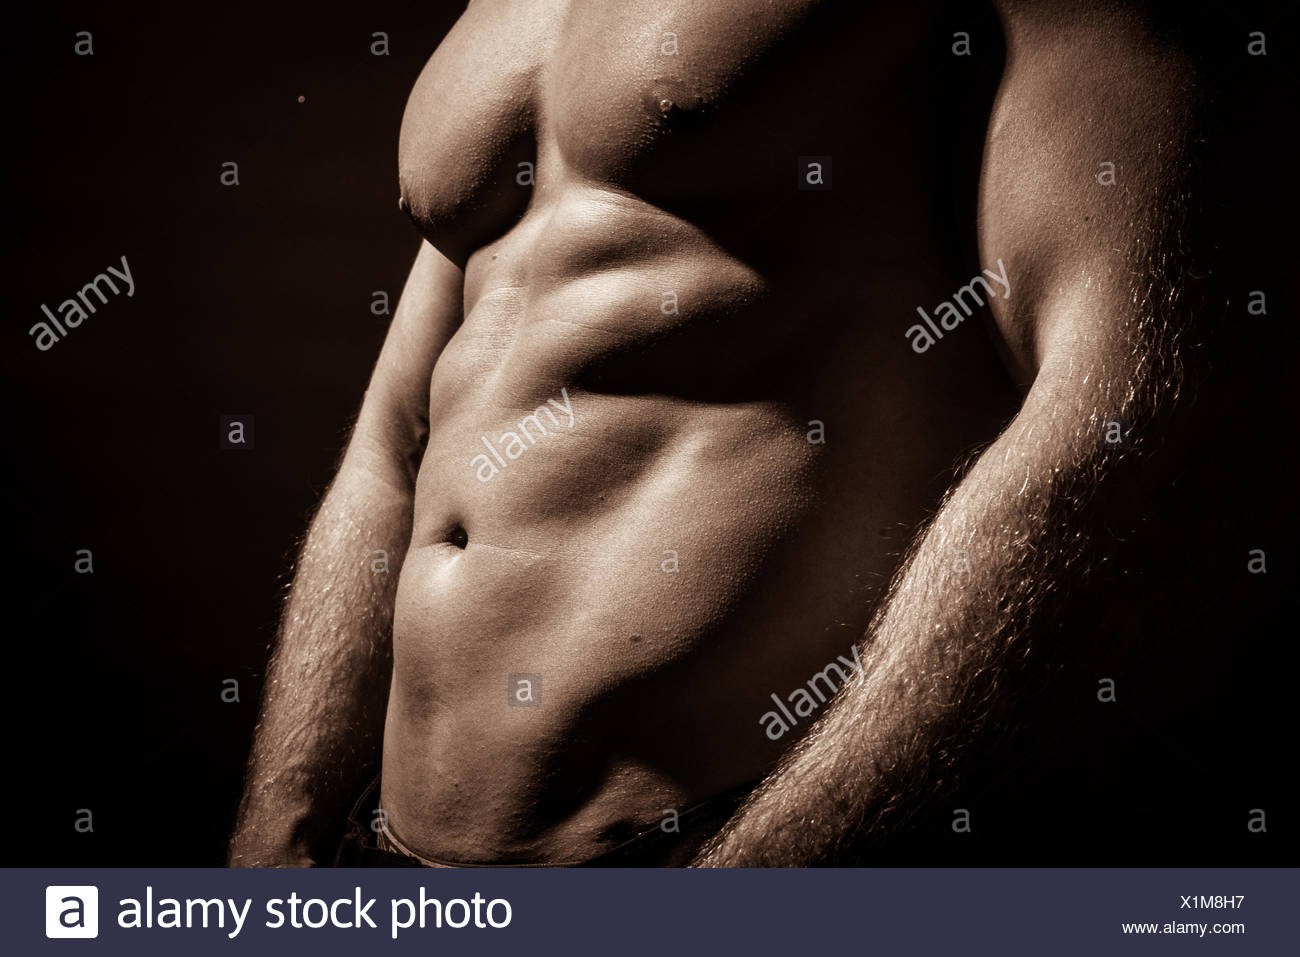 Midsection Of Shirtless Muscular Man Standing Against Black Background - Stock Image